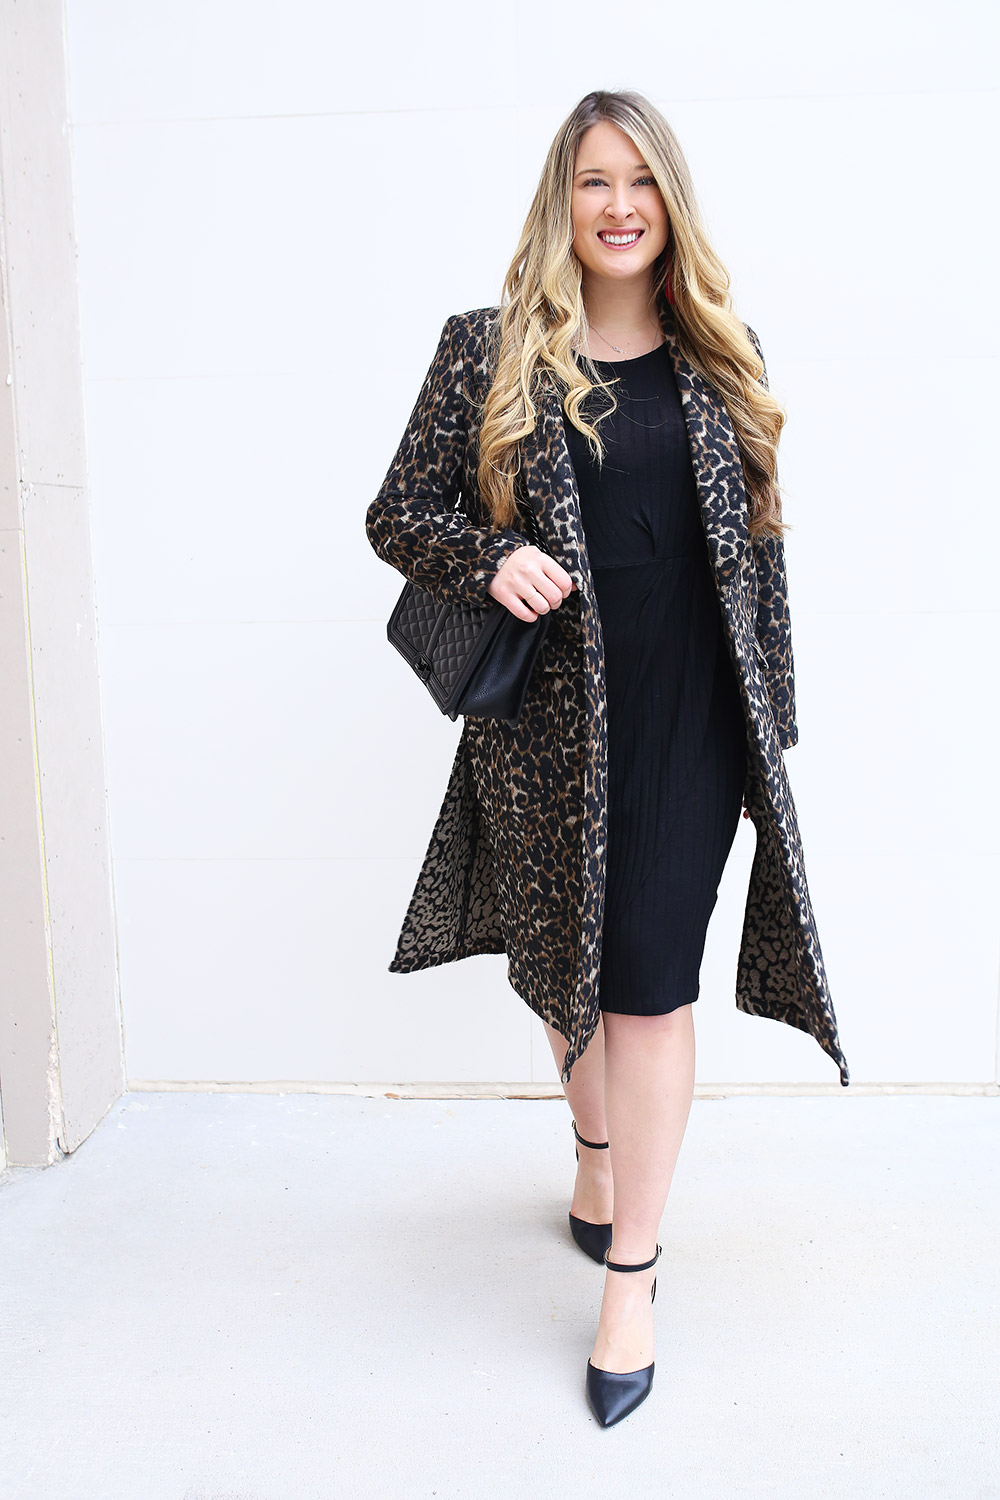 Outfit ideas for winter coats. Affordable winter coats. How to style a winter coat. Winter outfit inspiration with heavy coats.